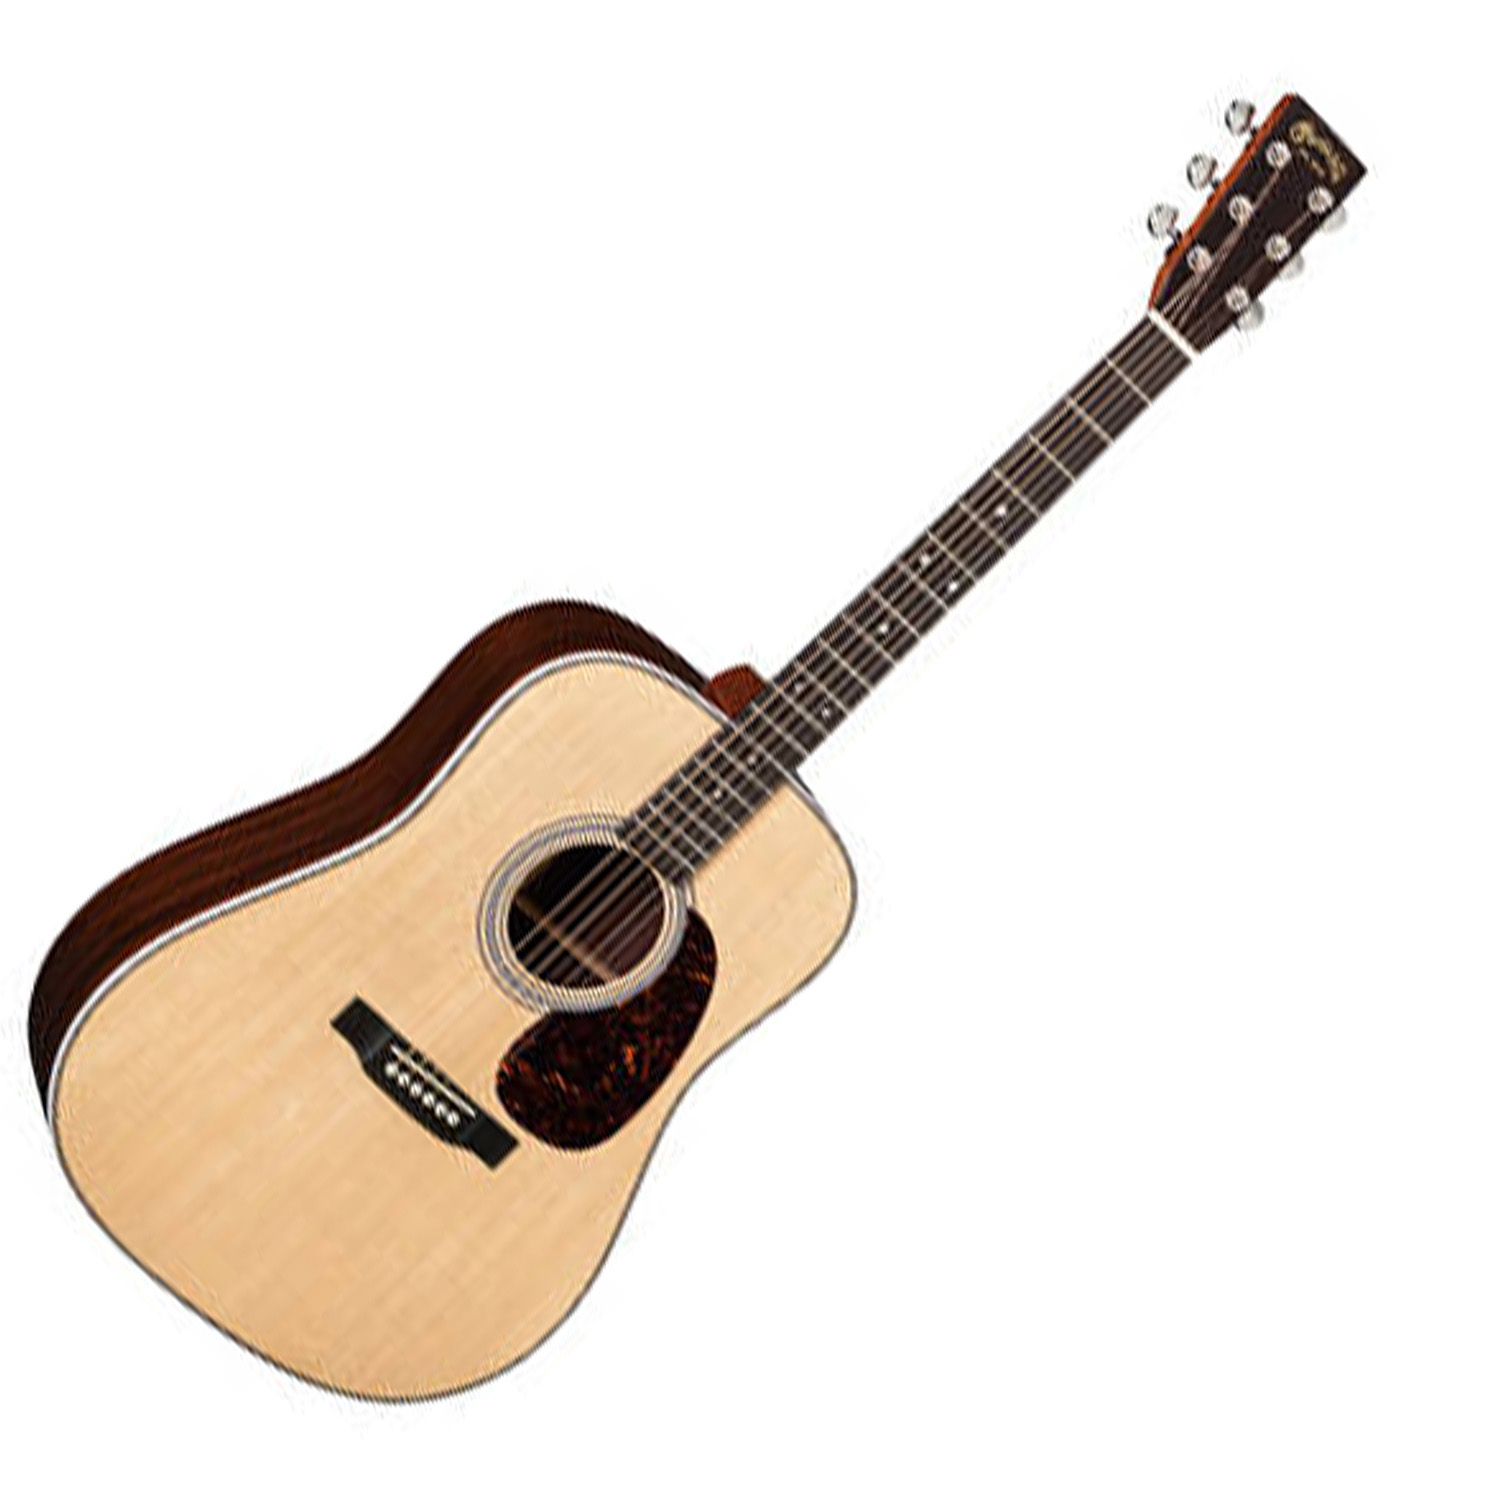 musicworks guitars acoustic guitars acoustic guitars martin acoustic guitar standard. Black Bedroom Furniture Sets. Home Design Ideas